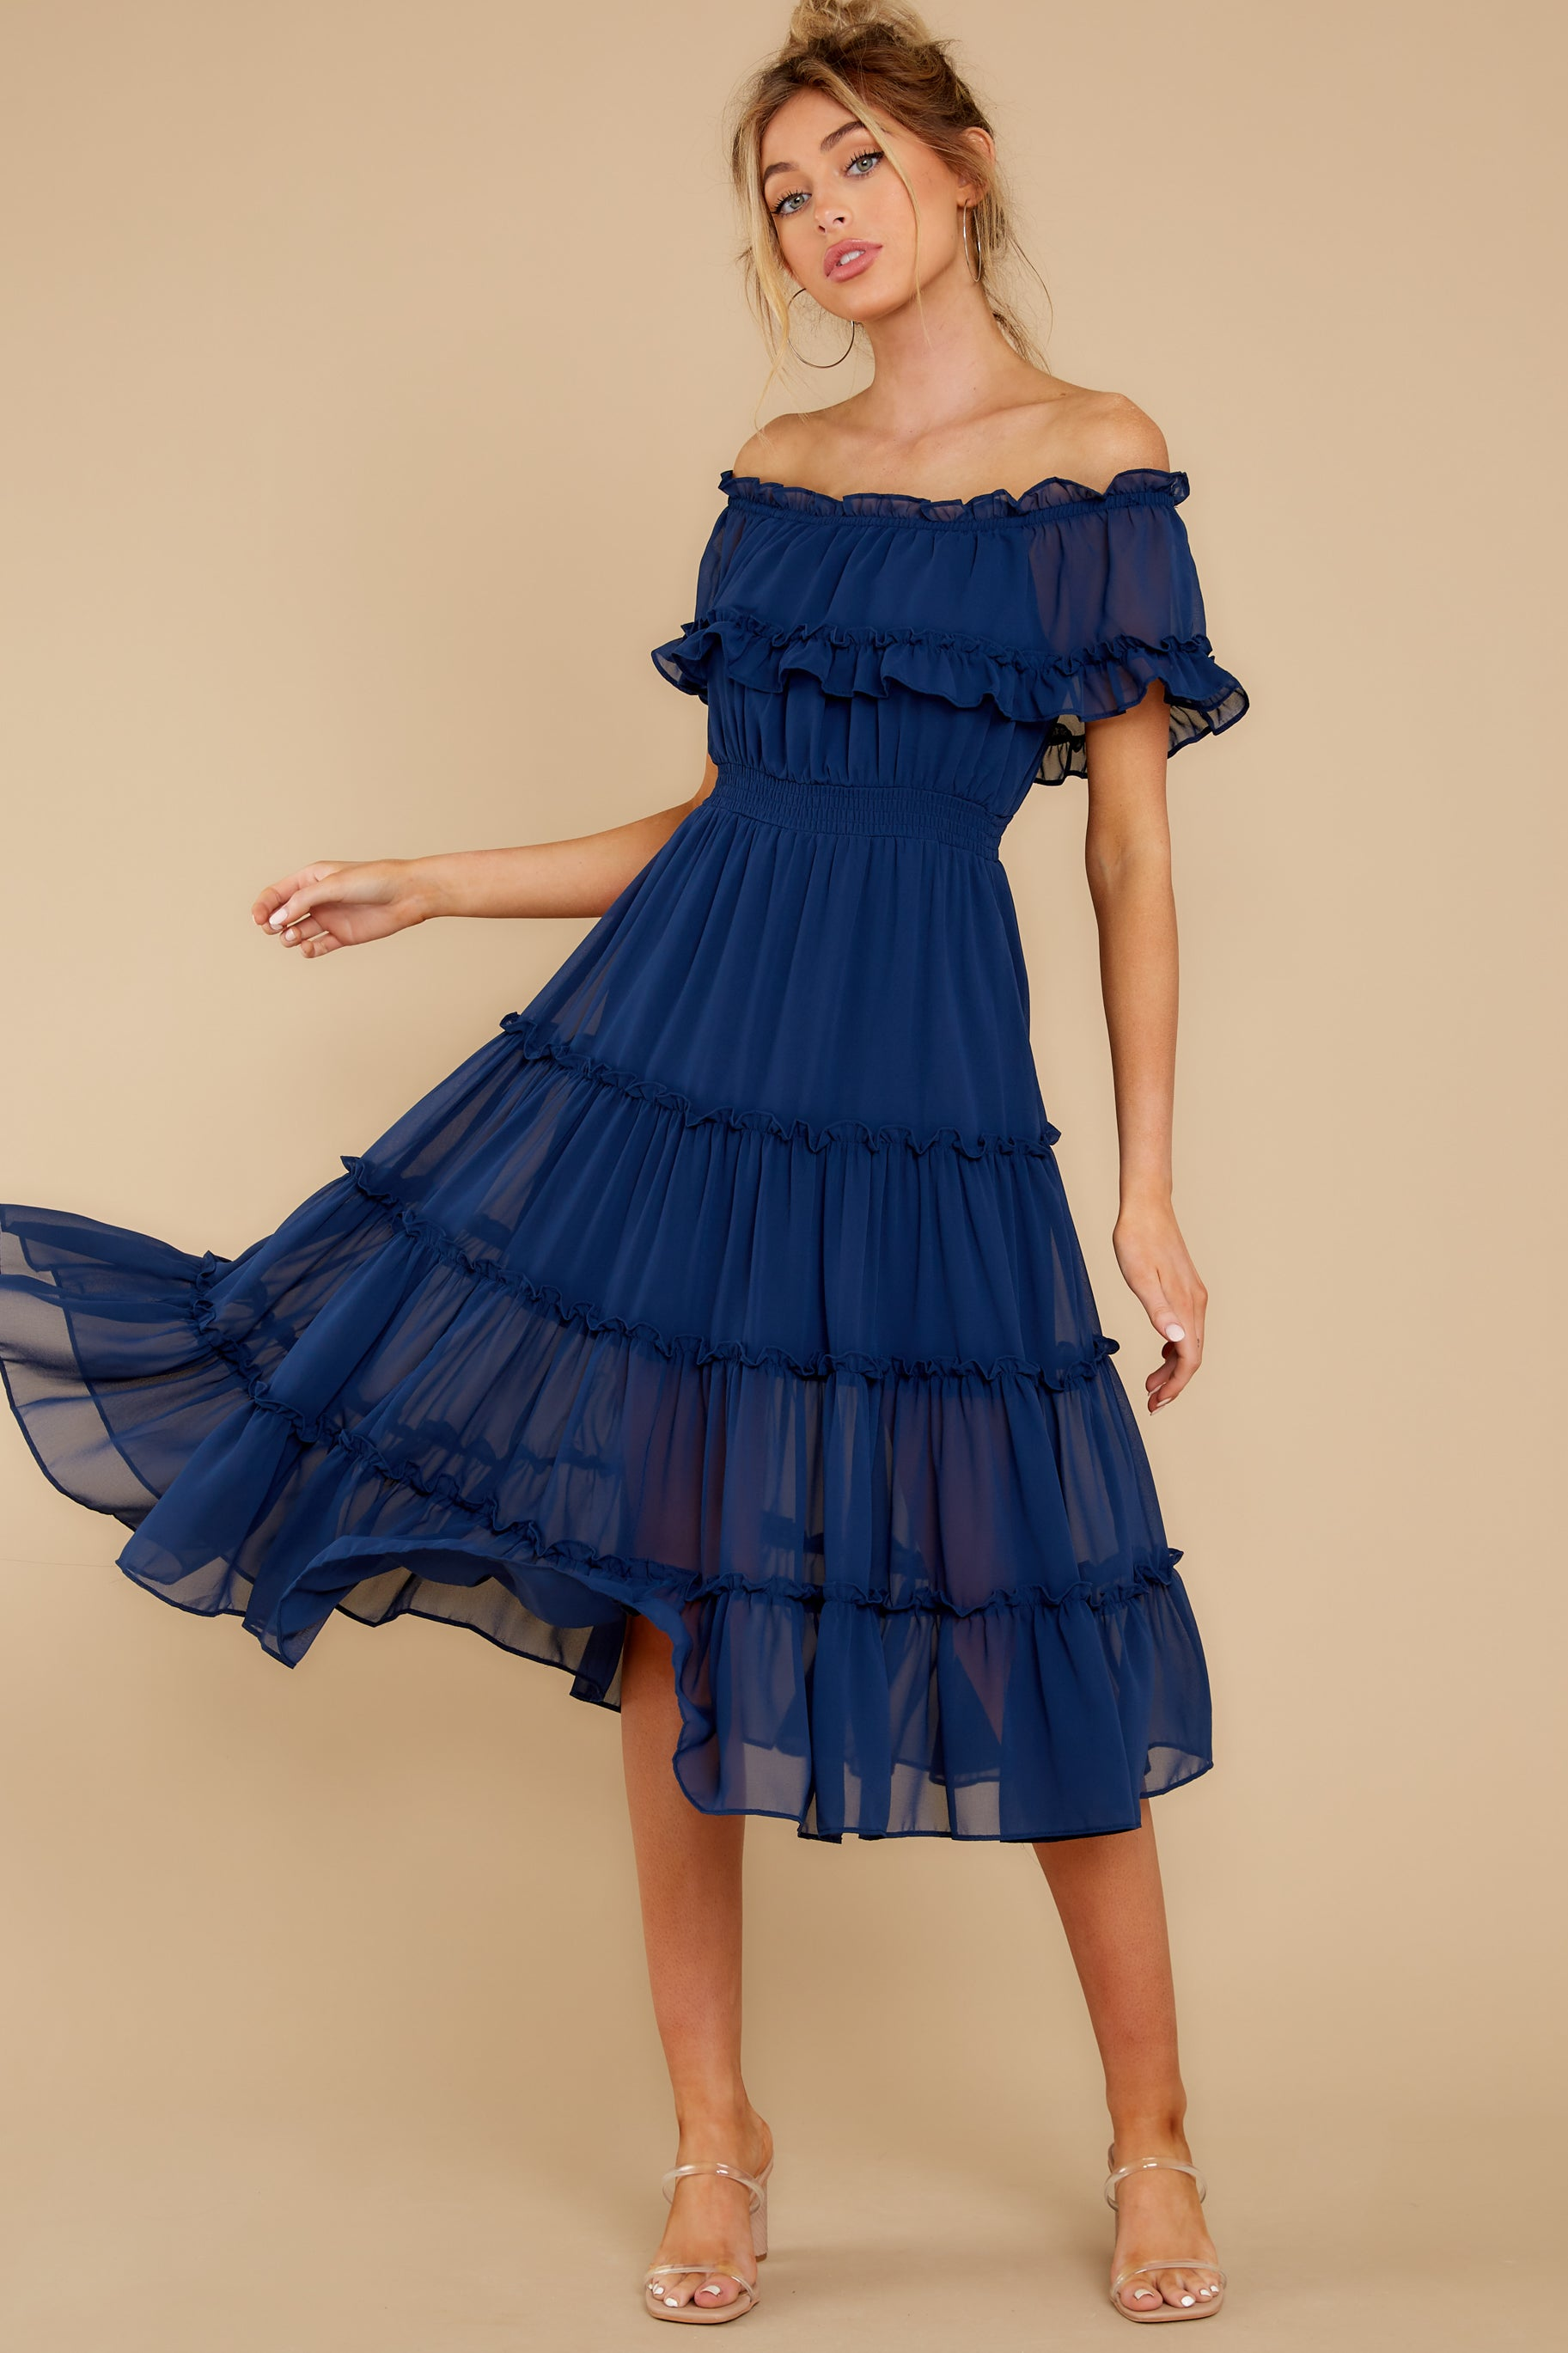 80s Dresses   Casual to Party Dresses As She Goes Navy Blue Off The Shoulder Midi Dress $54.00 AT vintagedancer.com